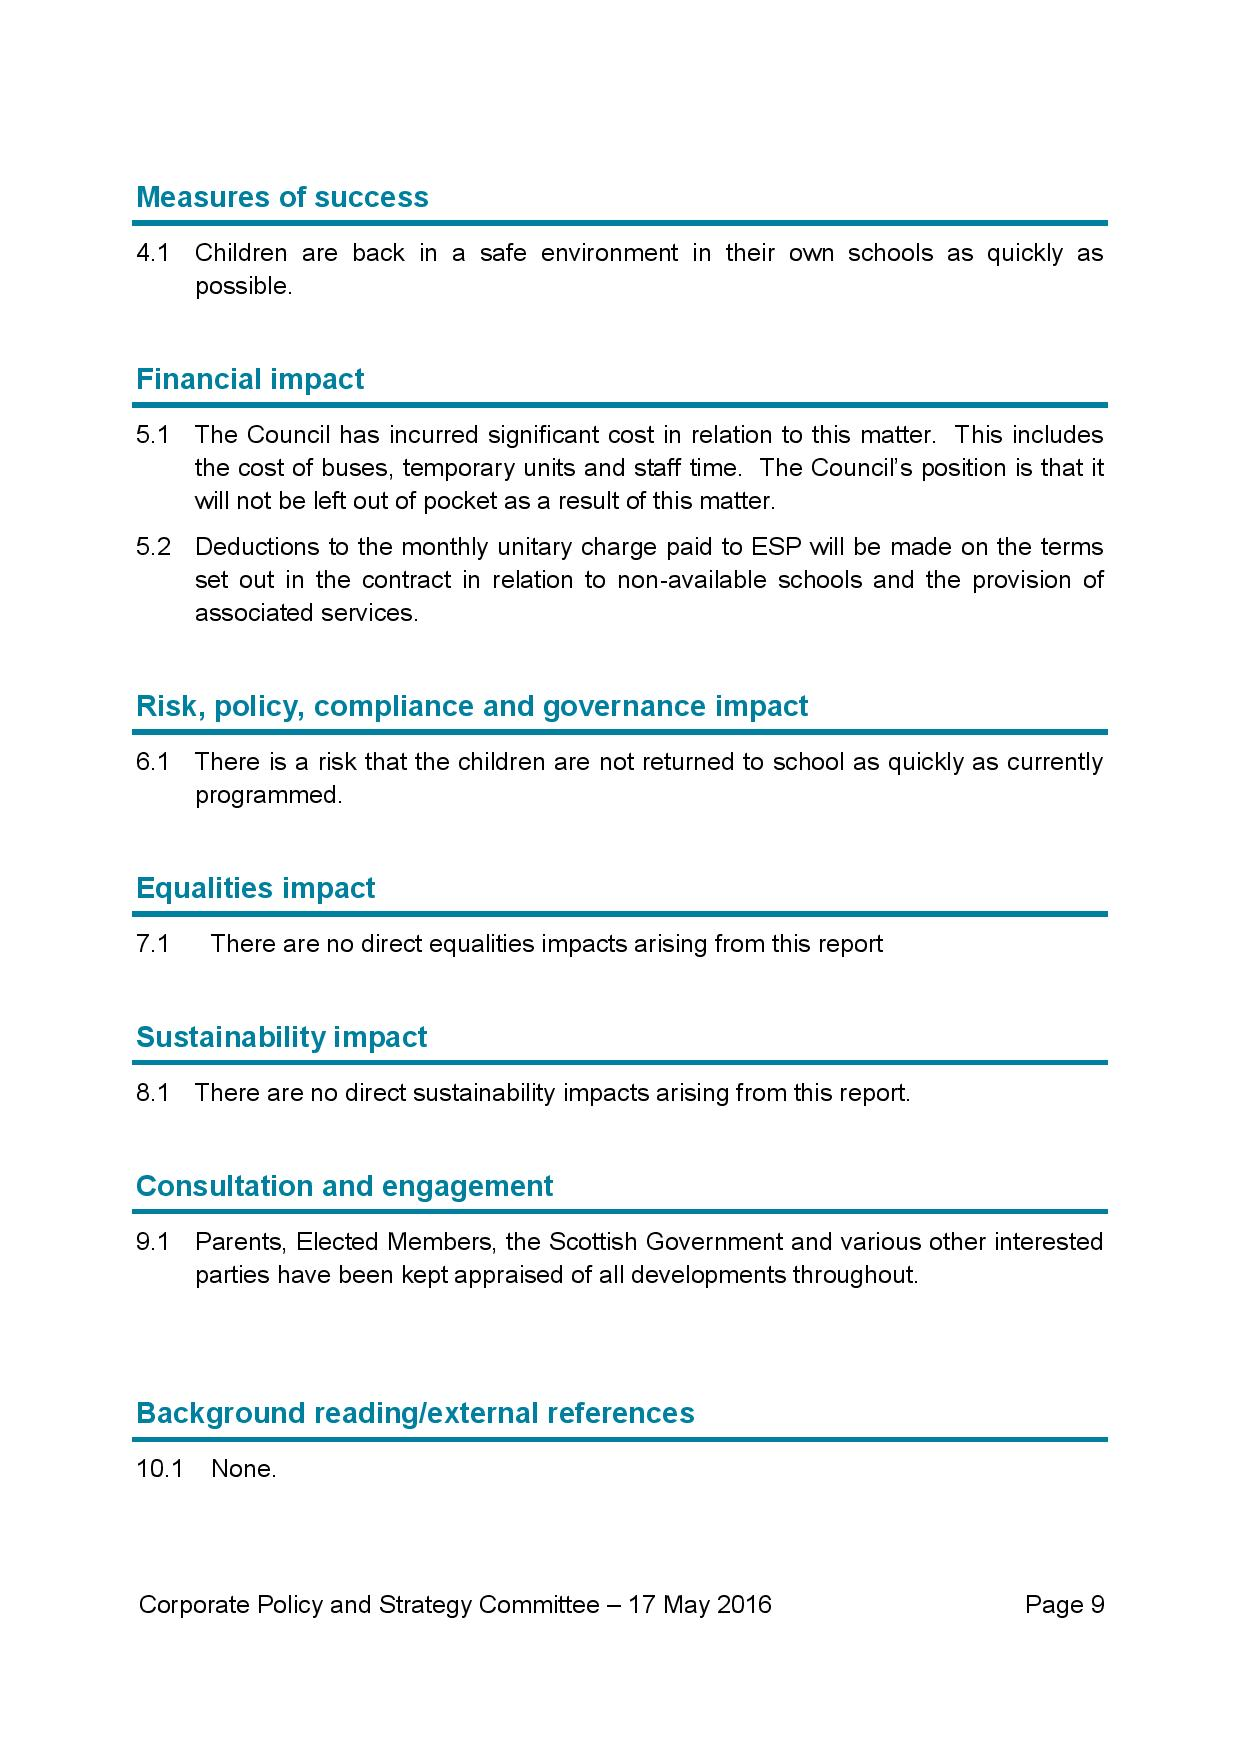 PPP1_Schools_CPS_Report_090516_v14_final-page-009.jpg